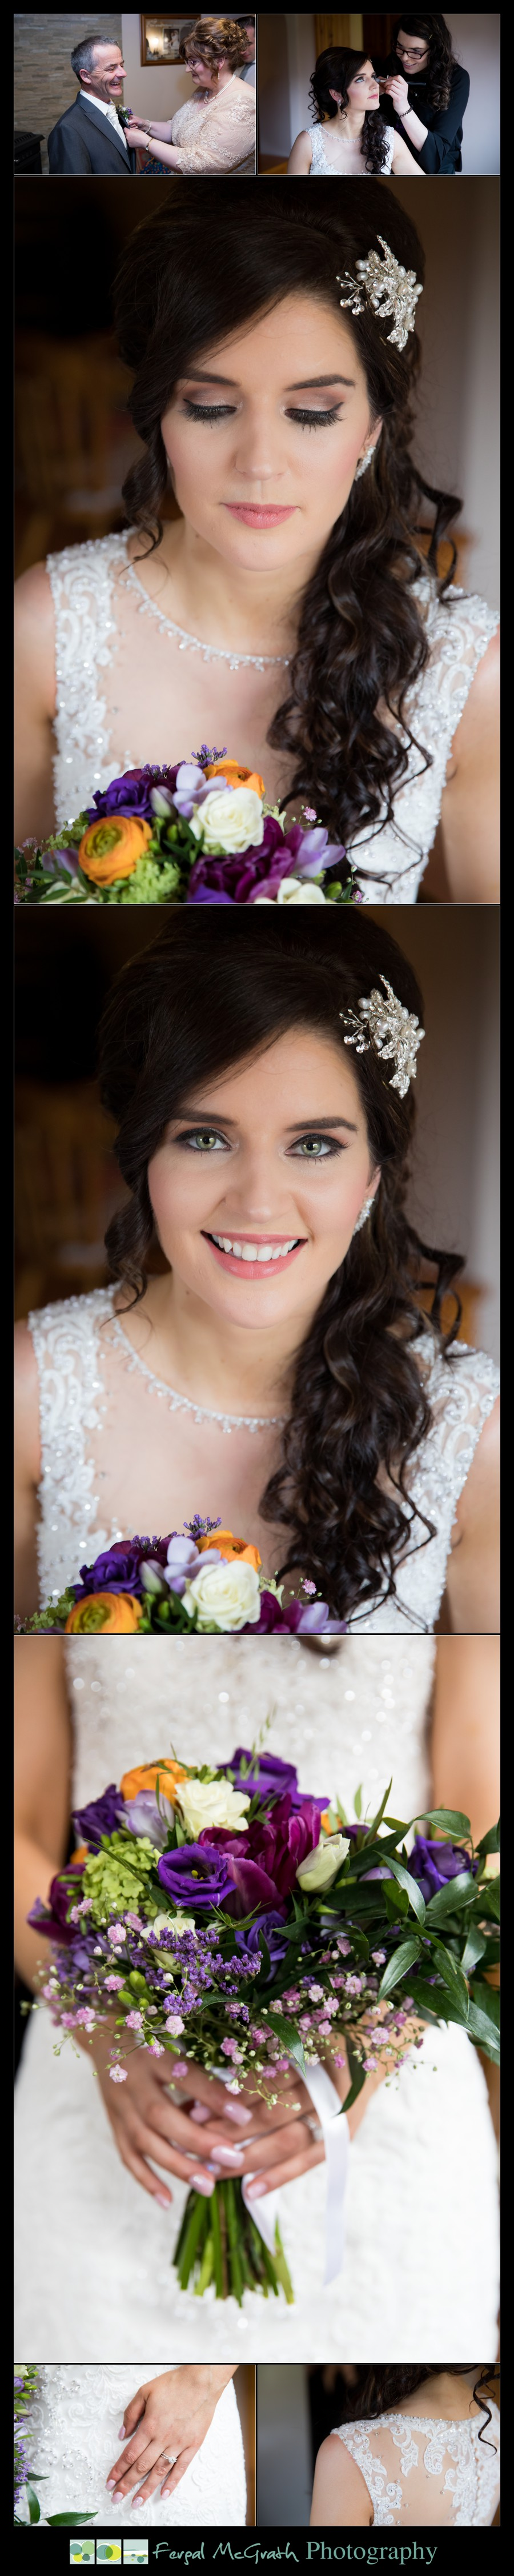 Glencolmcille wedding beautiful bride